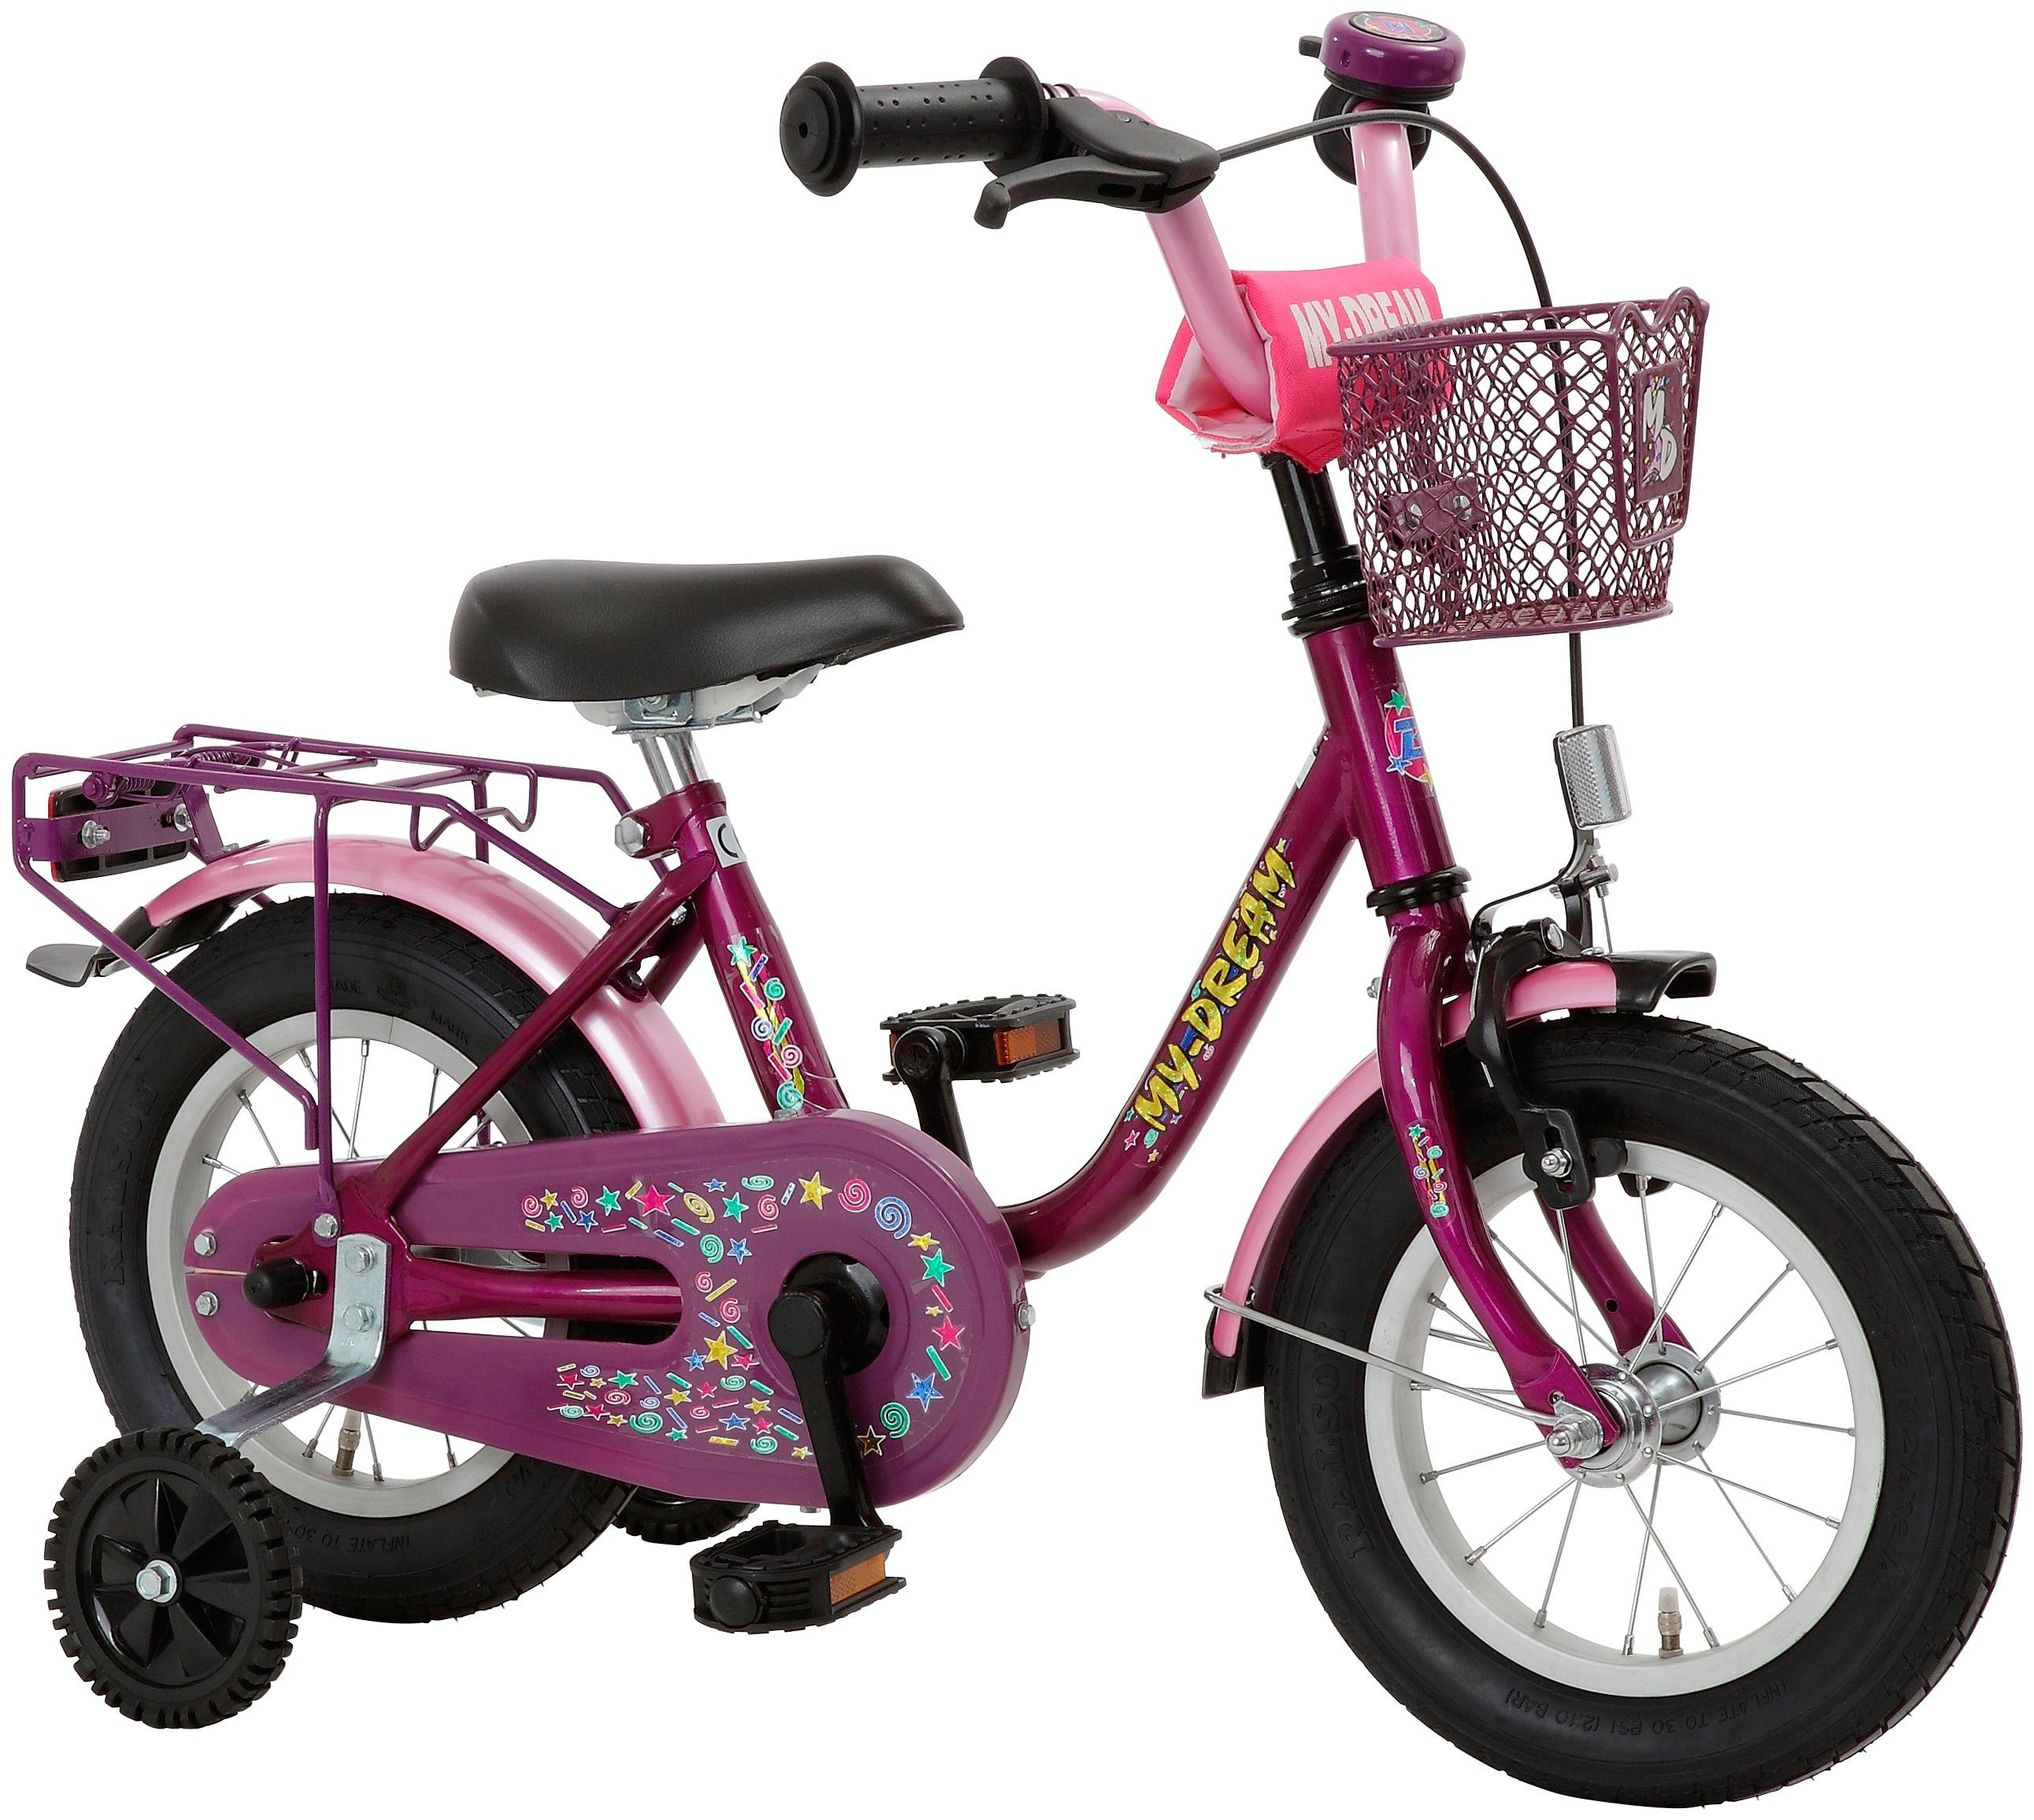 Cycles4Kids Kinderfahrrad »My Dream, 31,75 cm (12,5 Zoll)«